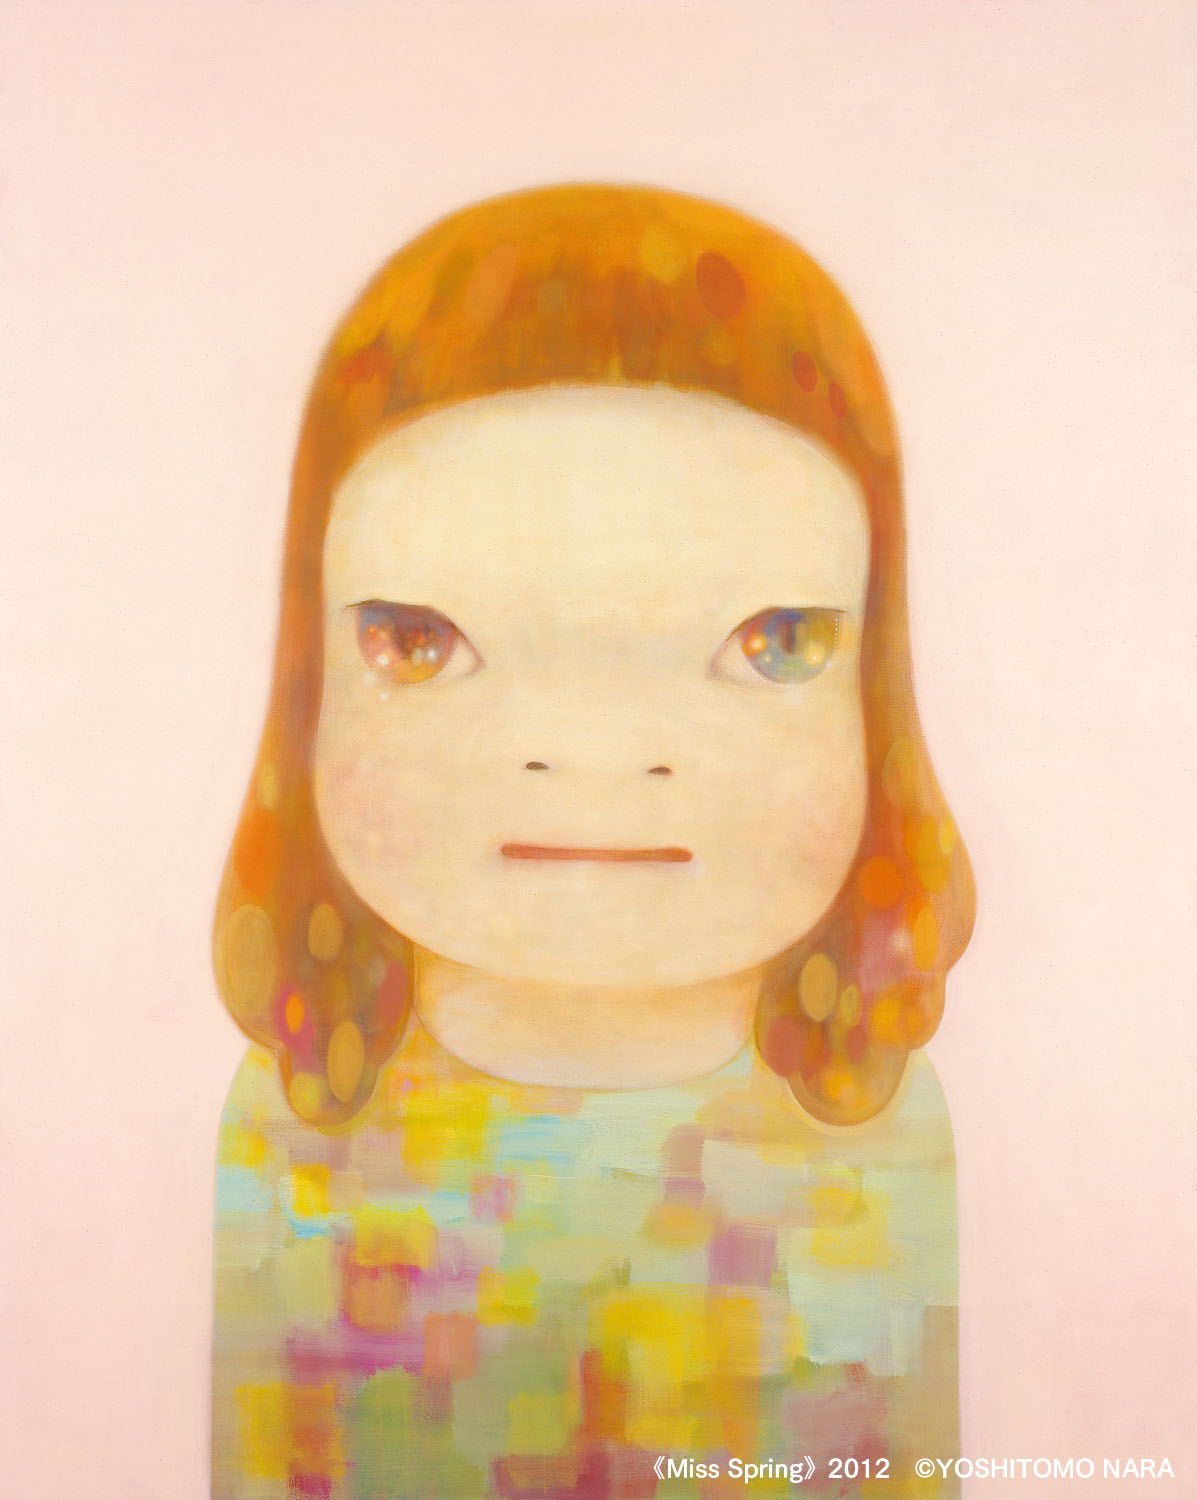 Painting by Yoshitomo Nara of a girl with colorful clothes and eyes in front of a pink background